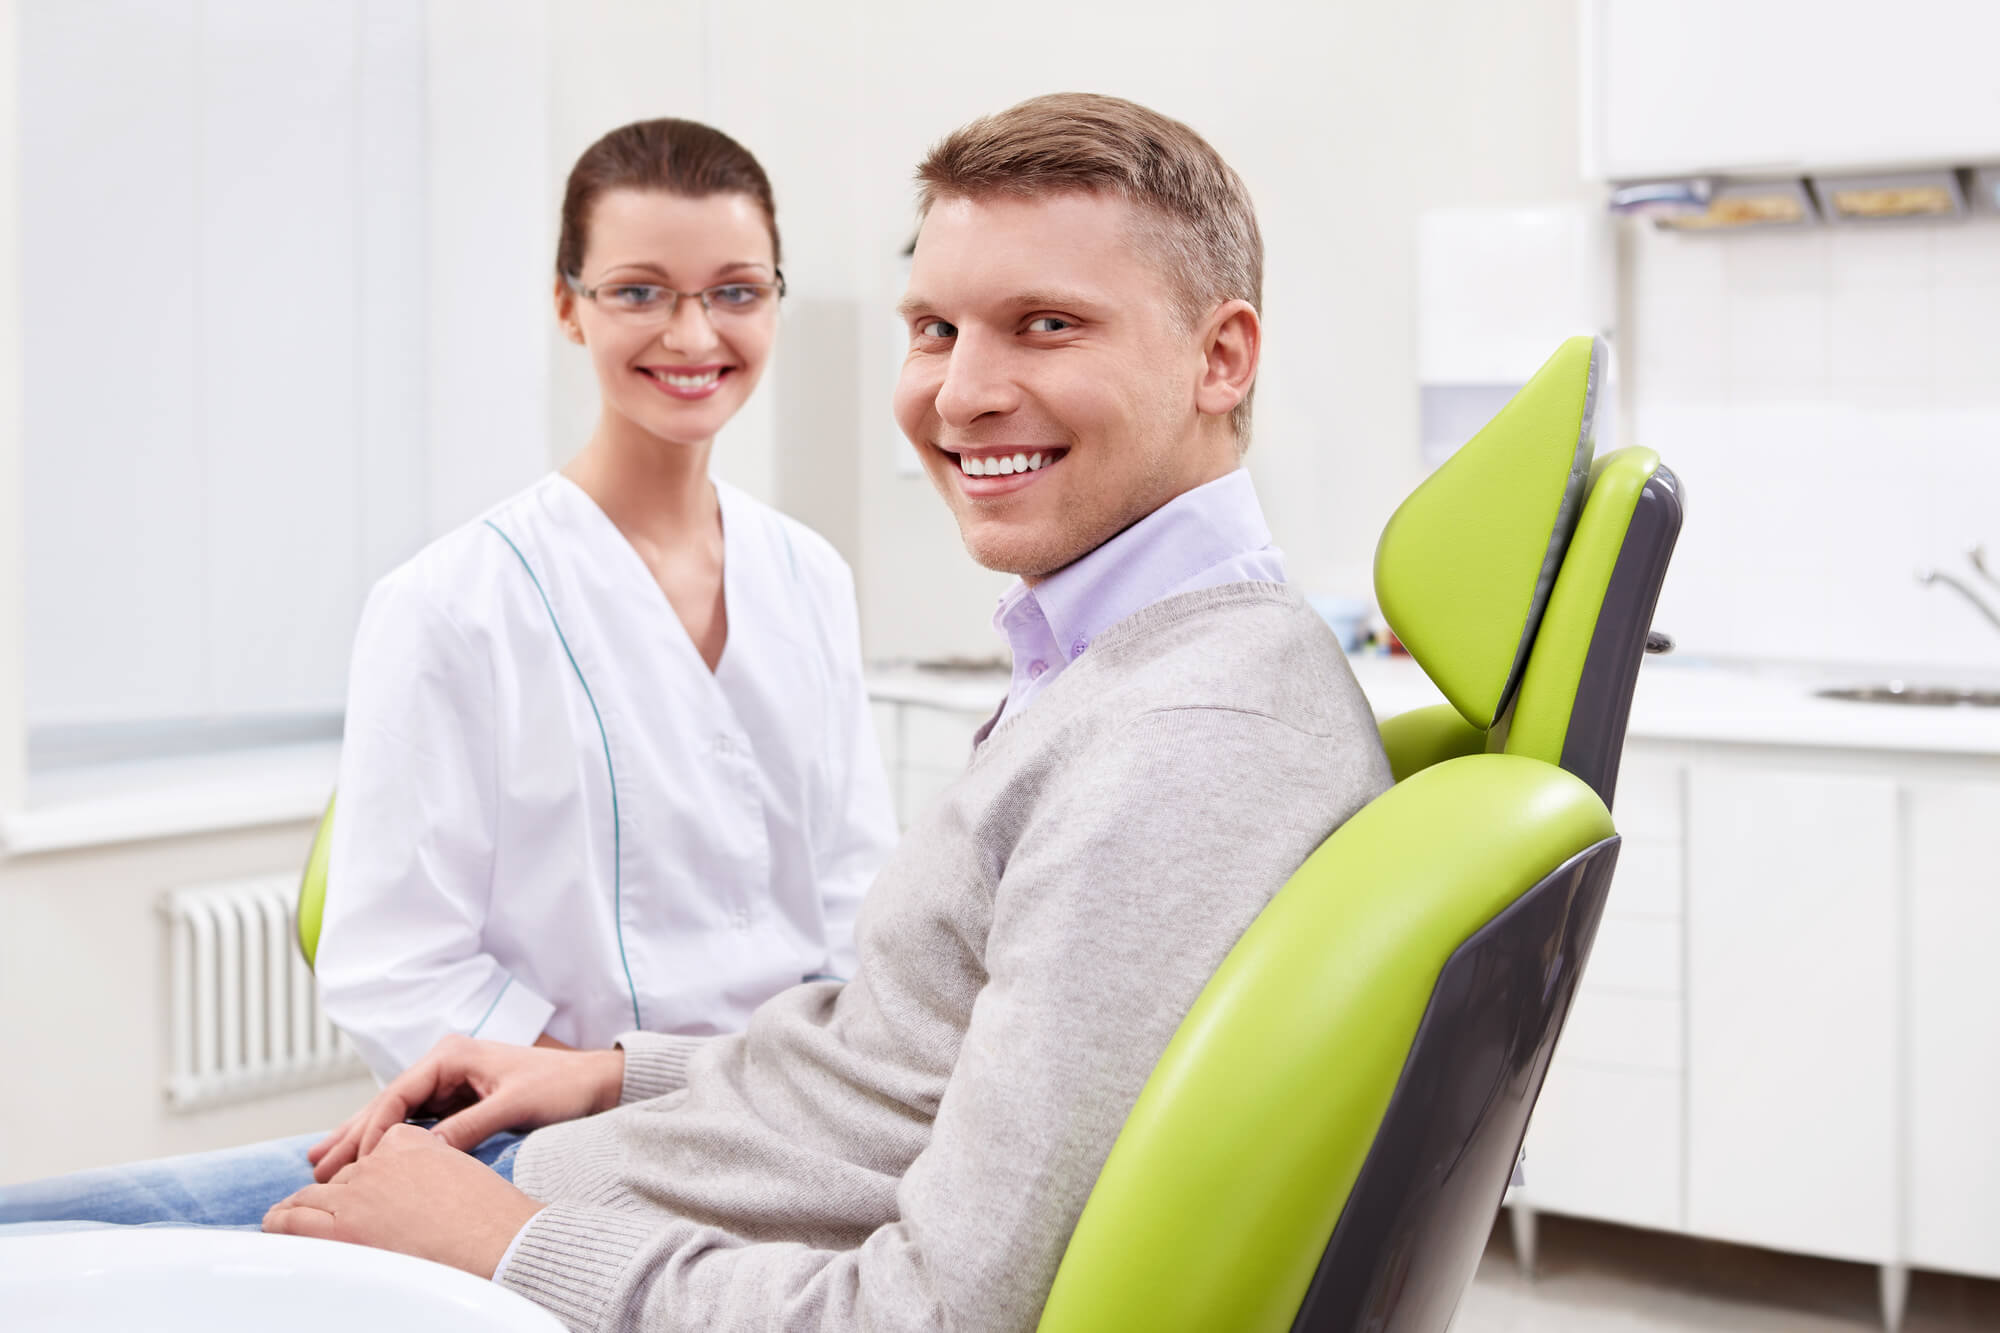 man tooth extractions greenville sc